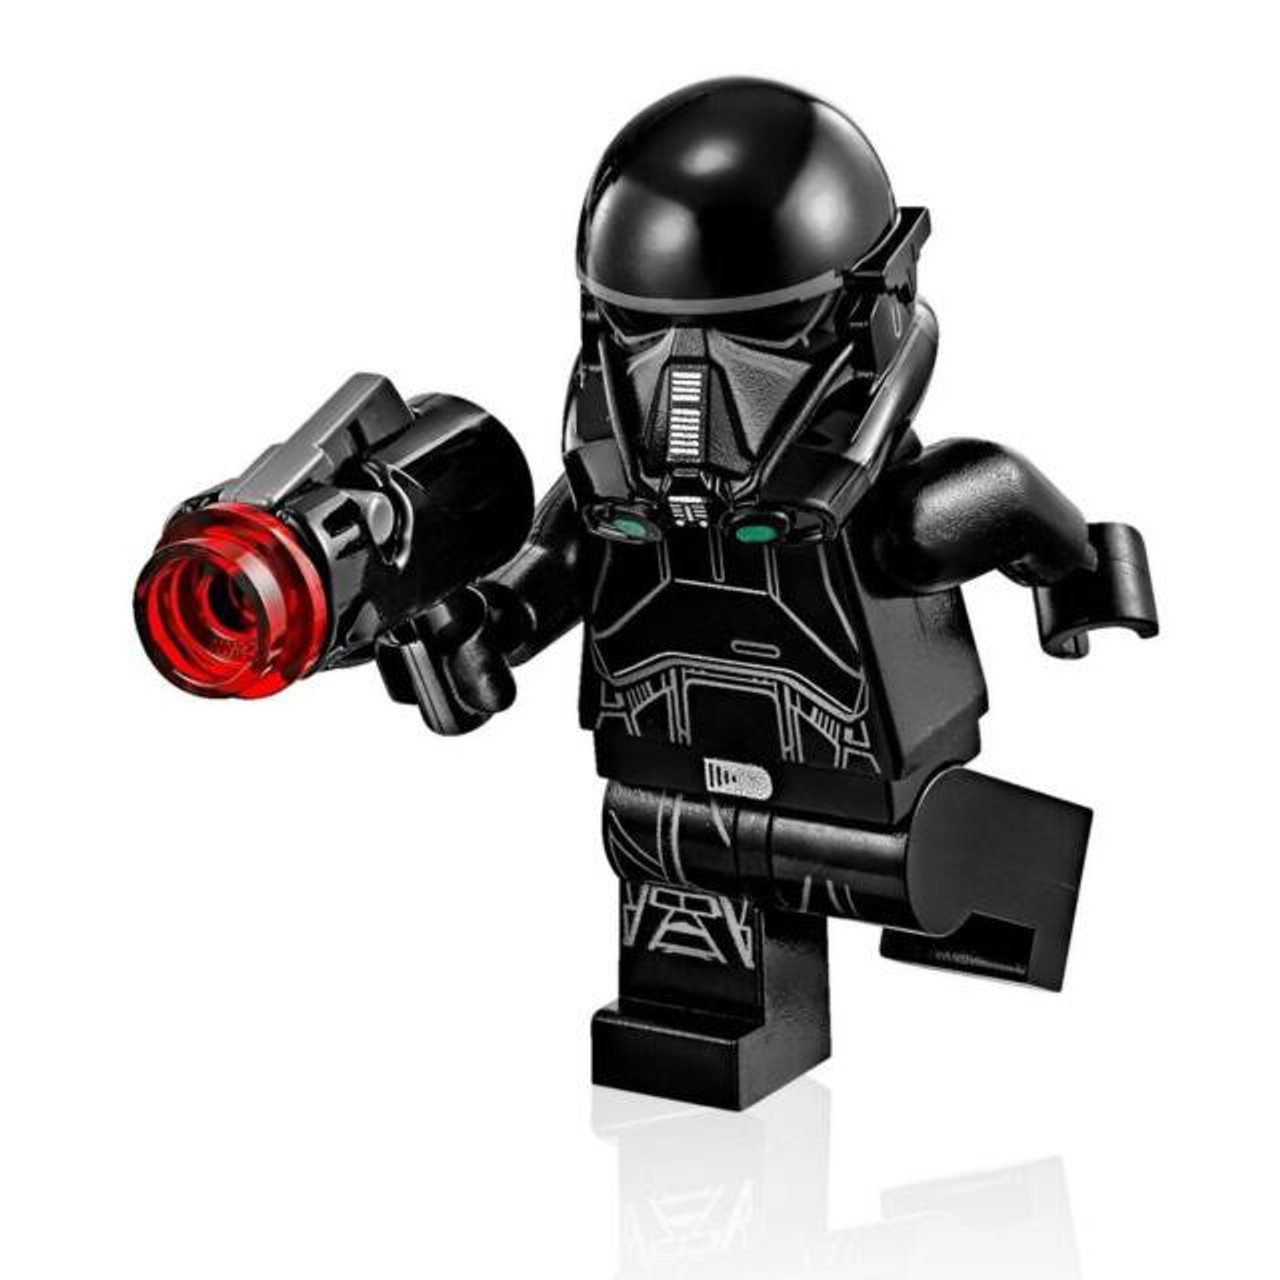 Star Wars Rogue One Loose Imperial Death Trooper